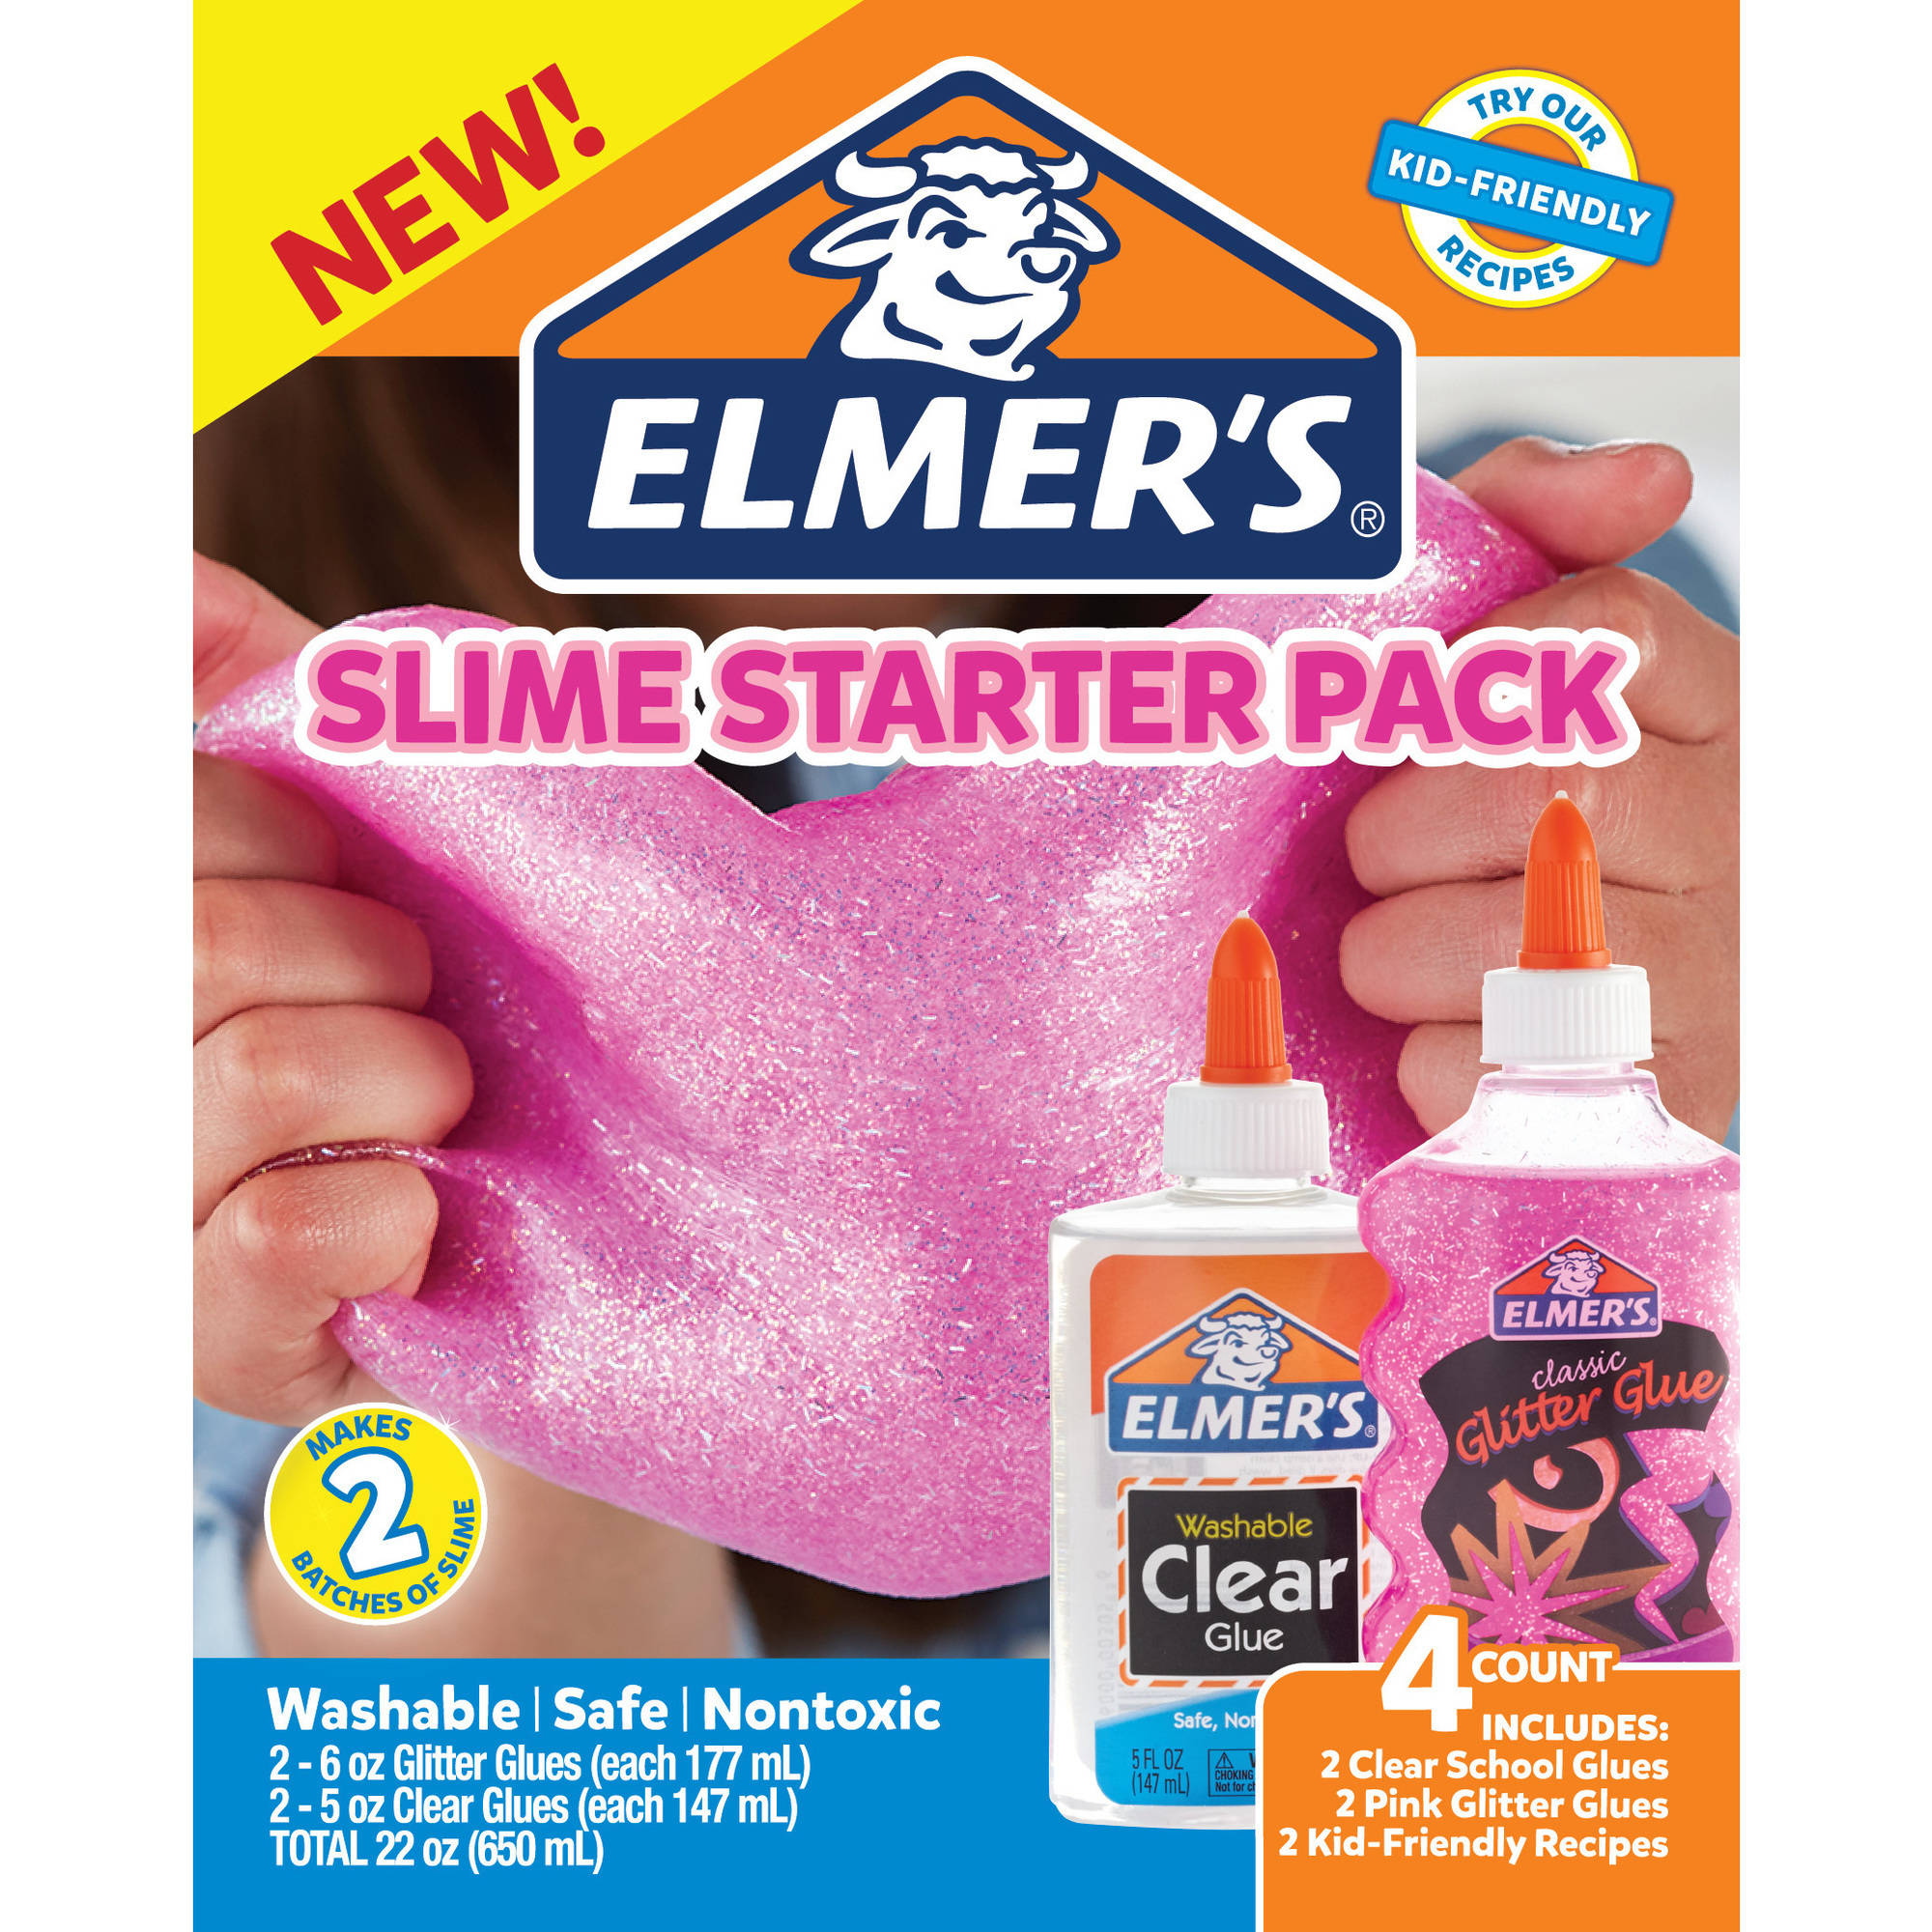 Elmer's Slime Kit 4ct. (2 Pink Glitter   2 Clear Glue) by Newell Brands